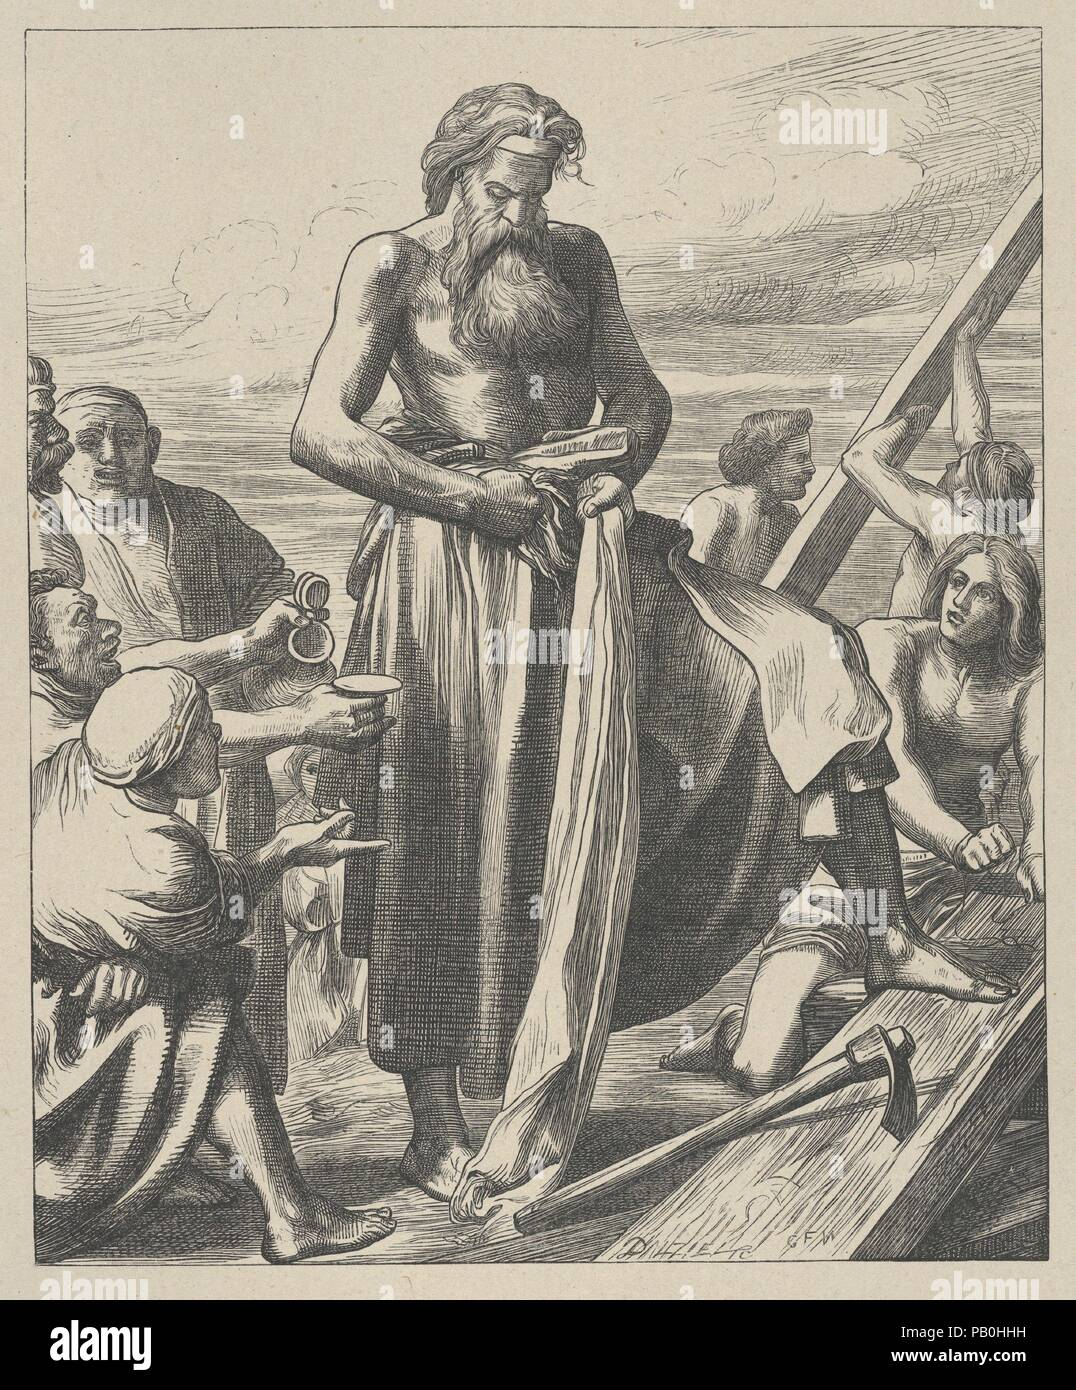 Noah Building the Ark (Dalziels' Bible Gallery). Artist: After George Frederic Watts (British, London 1817-1904 London). Dimensions: Image: 8 7/16 × 6 15/16 in. (21.5 × 17.6 cm)  India sheet: 10 1/4 × 8 11/16 in. (26.1 × 22.1 cm)  Mount: 16 7/16 in. × 12 15/16 in. (41.8 × 32.8 cm). Engraver: Dalziel Brothers (British, active 1839-1893). Printer: Camden Press (British, London). Publisher: Scribner and Welford (New York, NY). Date: 1881. Museum: Metropolitan Museum of Art, New York, USA. Stock Photo